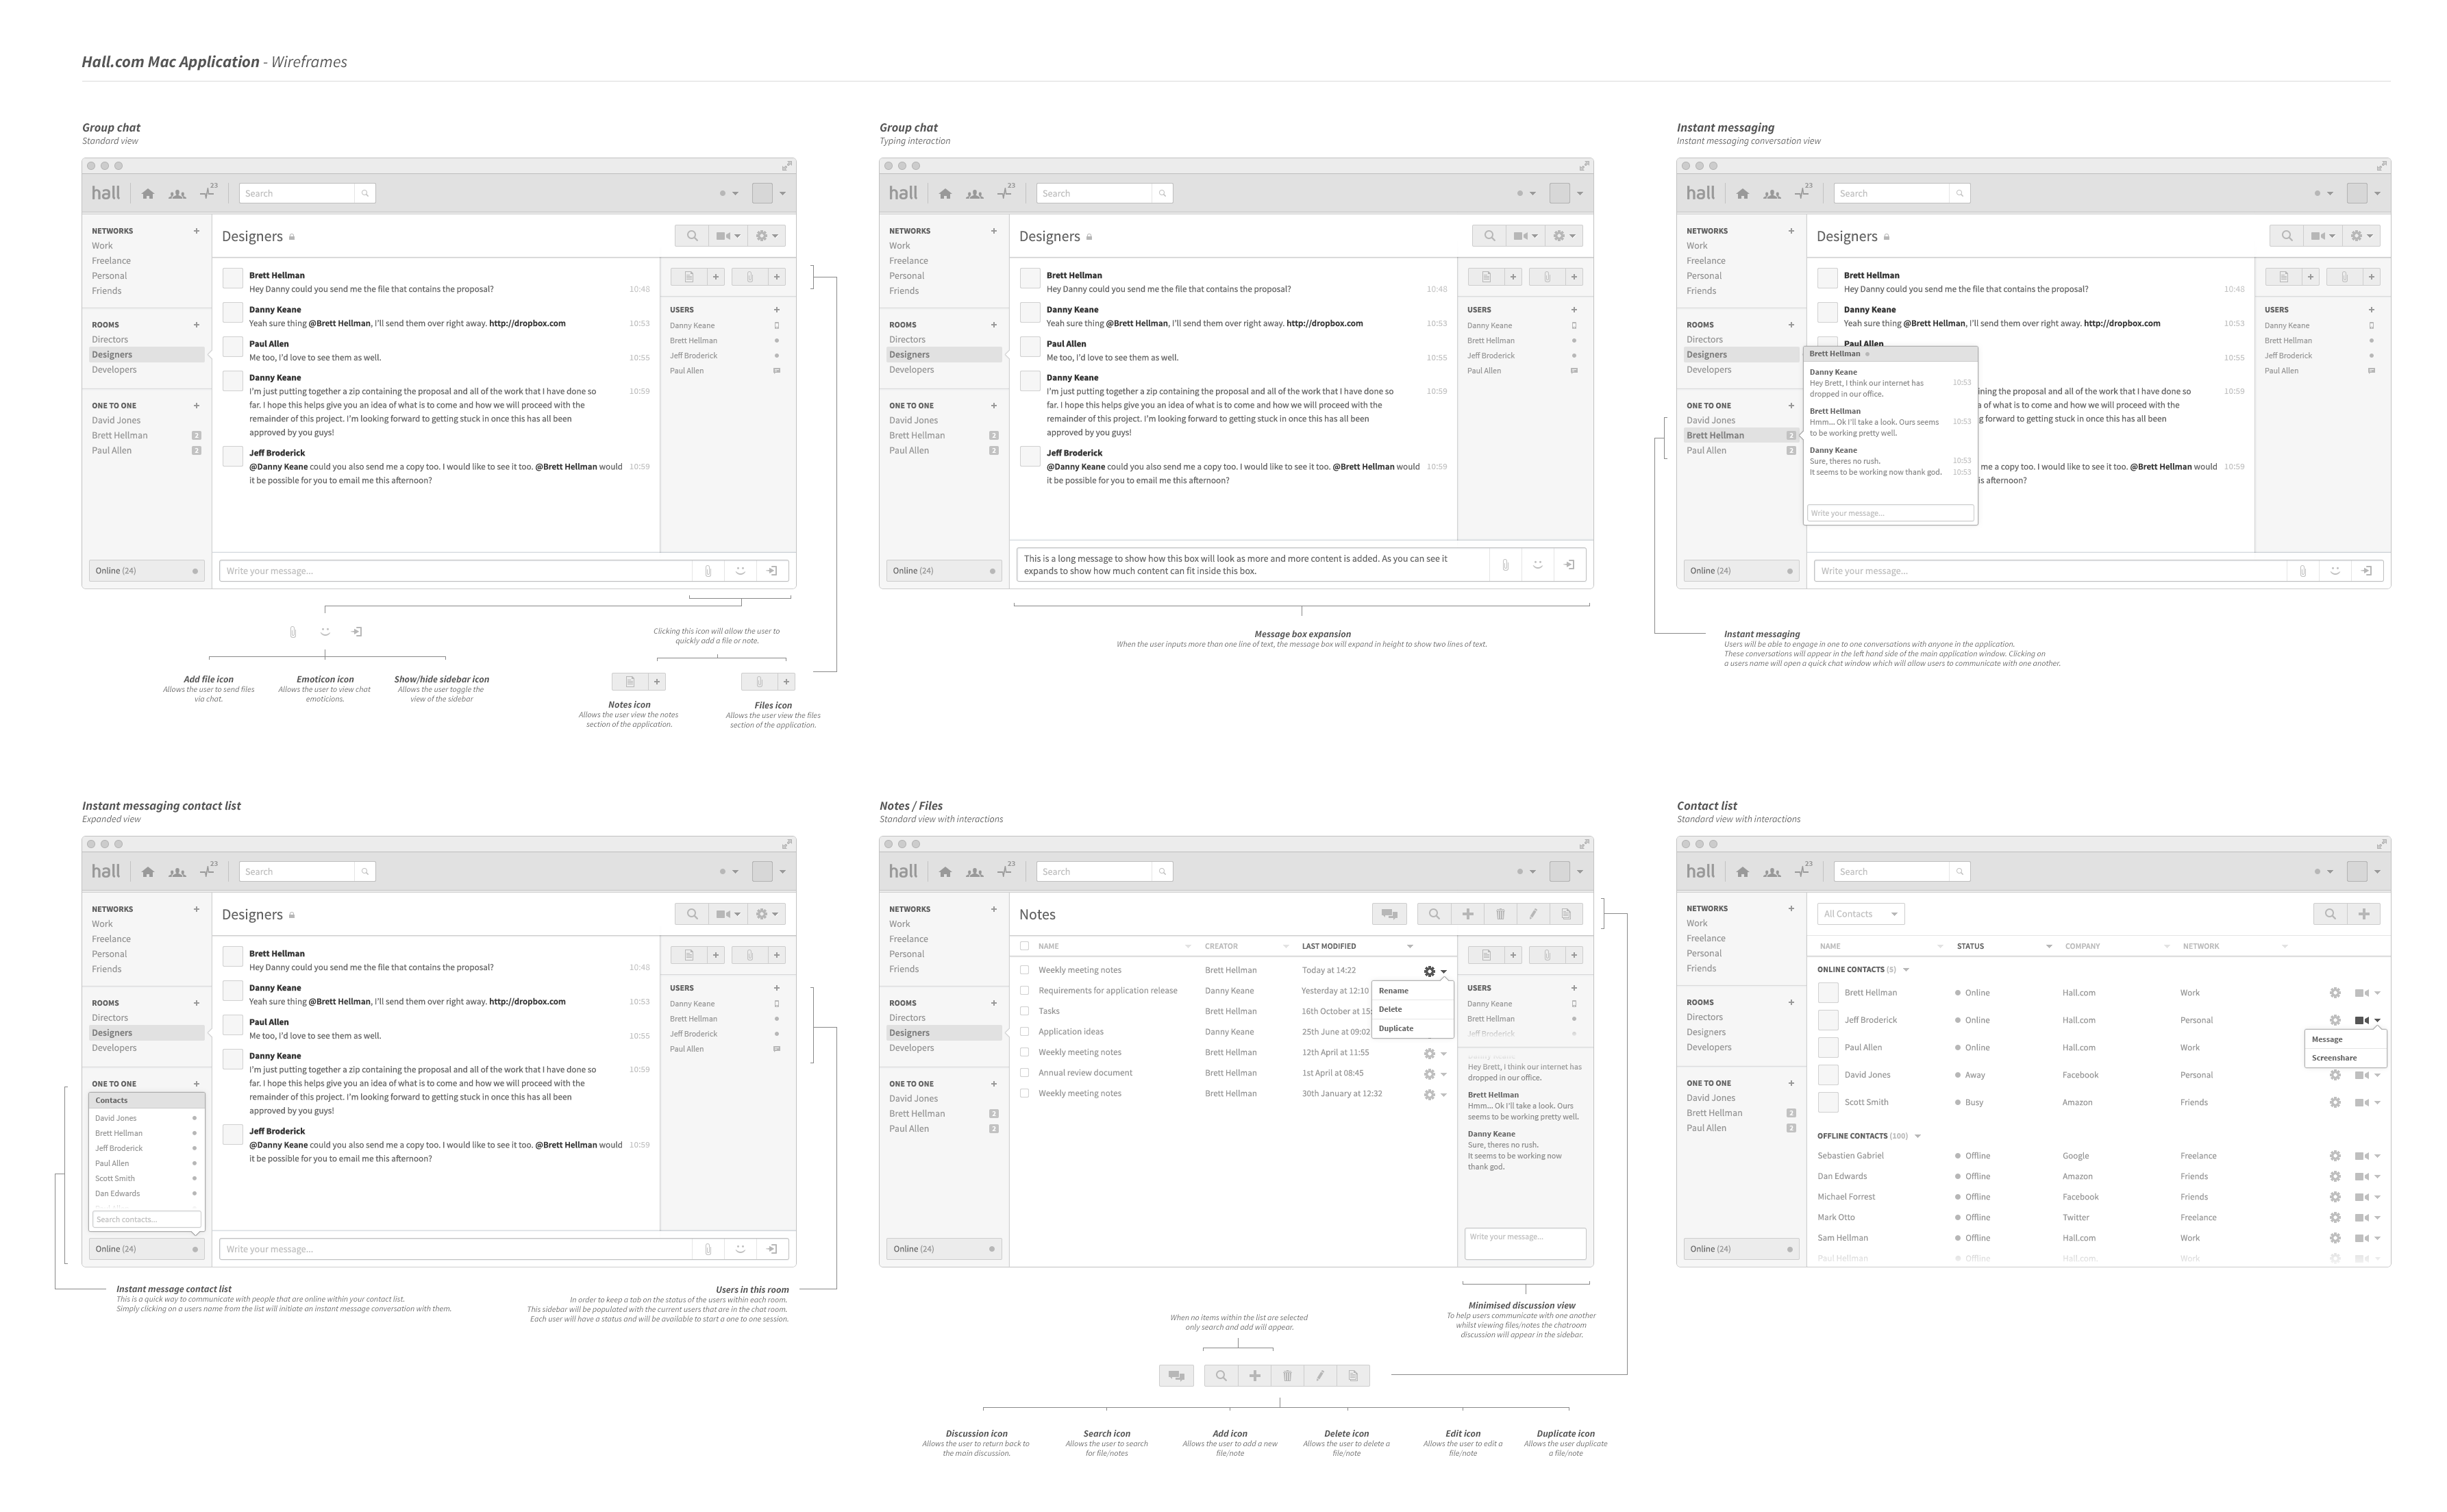 Hall_mac_application_wireframe_preview